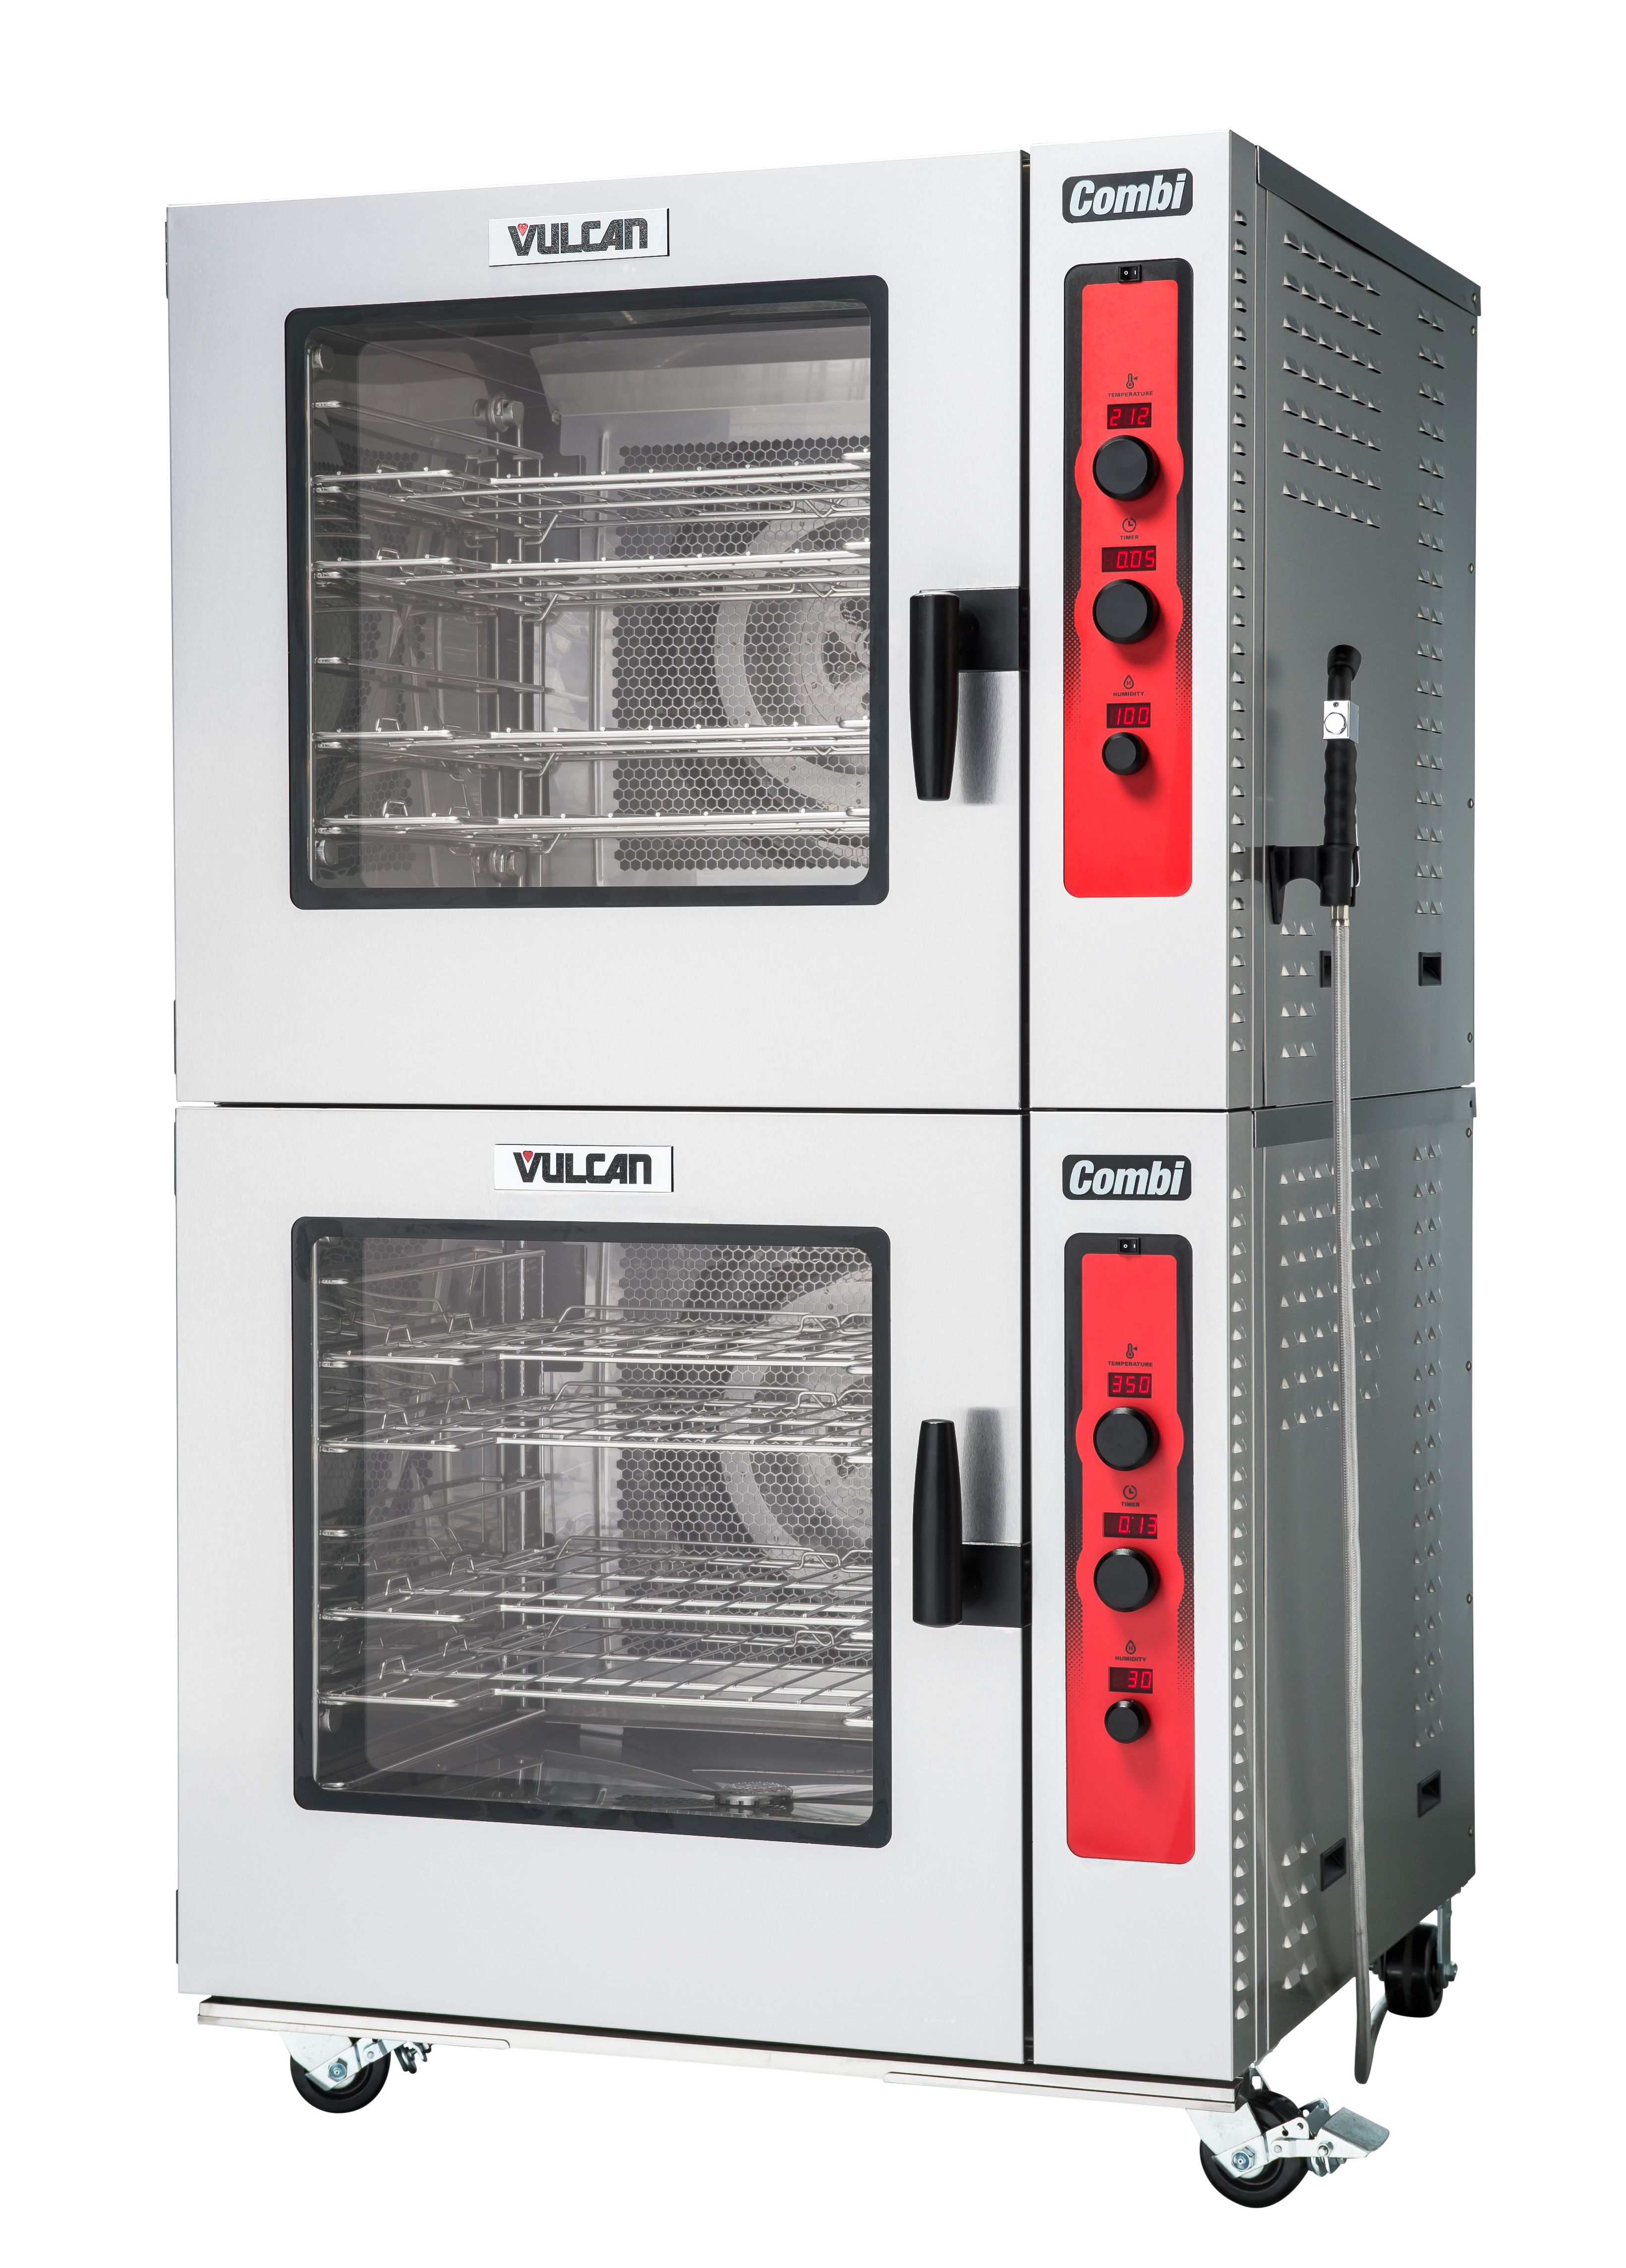 Vulcan Kitchen Equipment Subway Tiles In Combi Oven Kitchens Pinterest Cooking Commercial Ovens